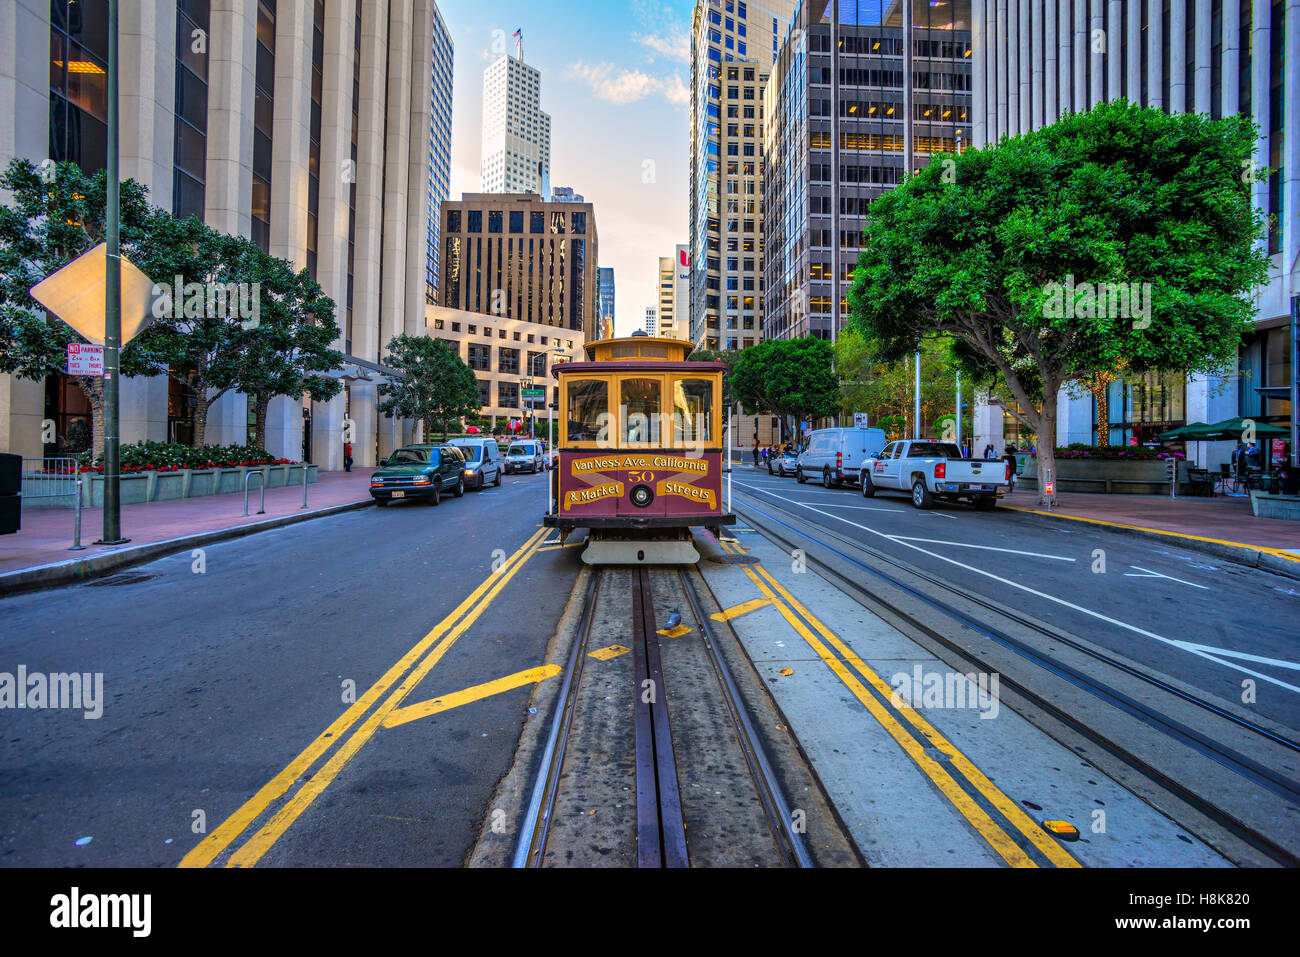 SAN FRANCISCO, USA - DECEMBER 16: Passengers enjoy a ride in a cable car on Dec 16, 2013 in San Francisco. It is - Stock Image